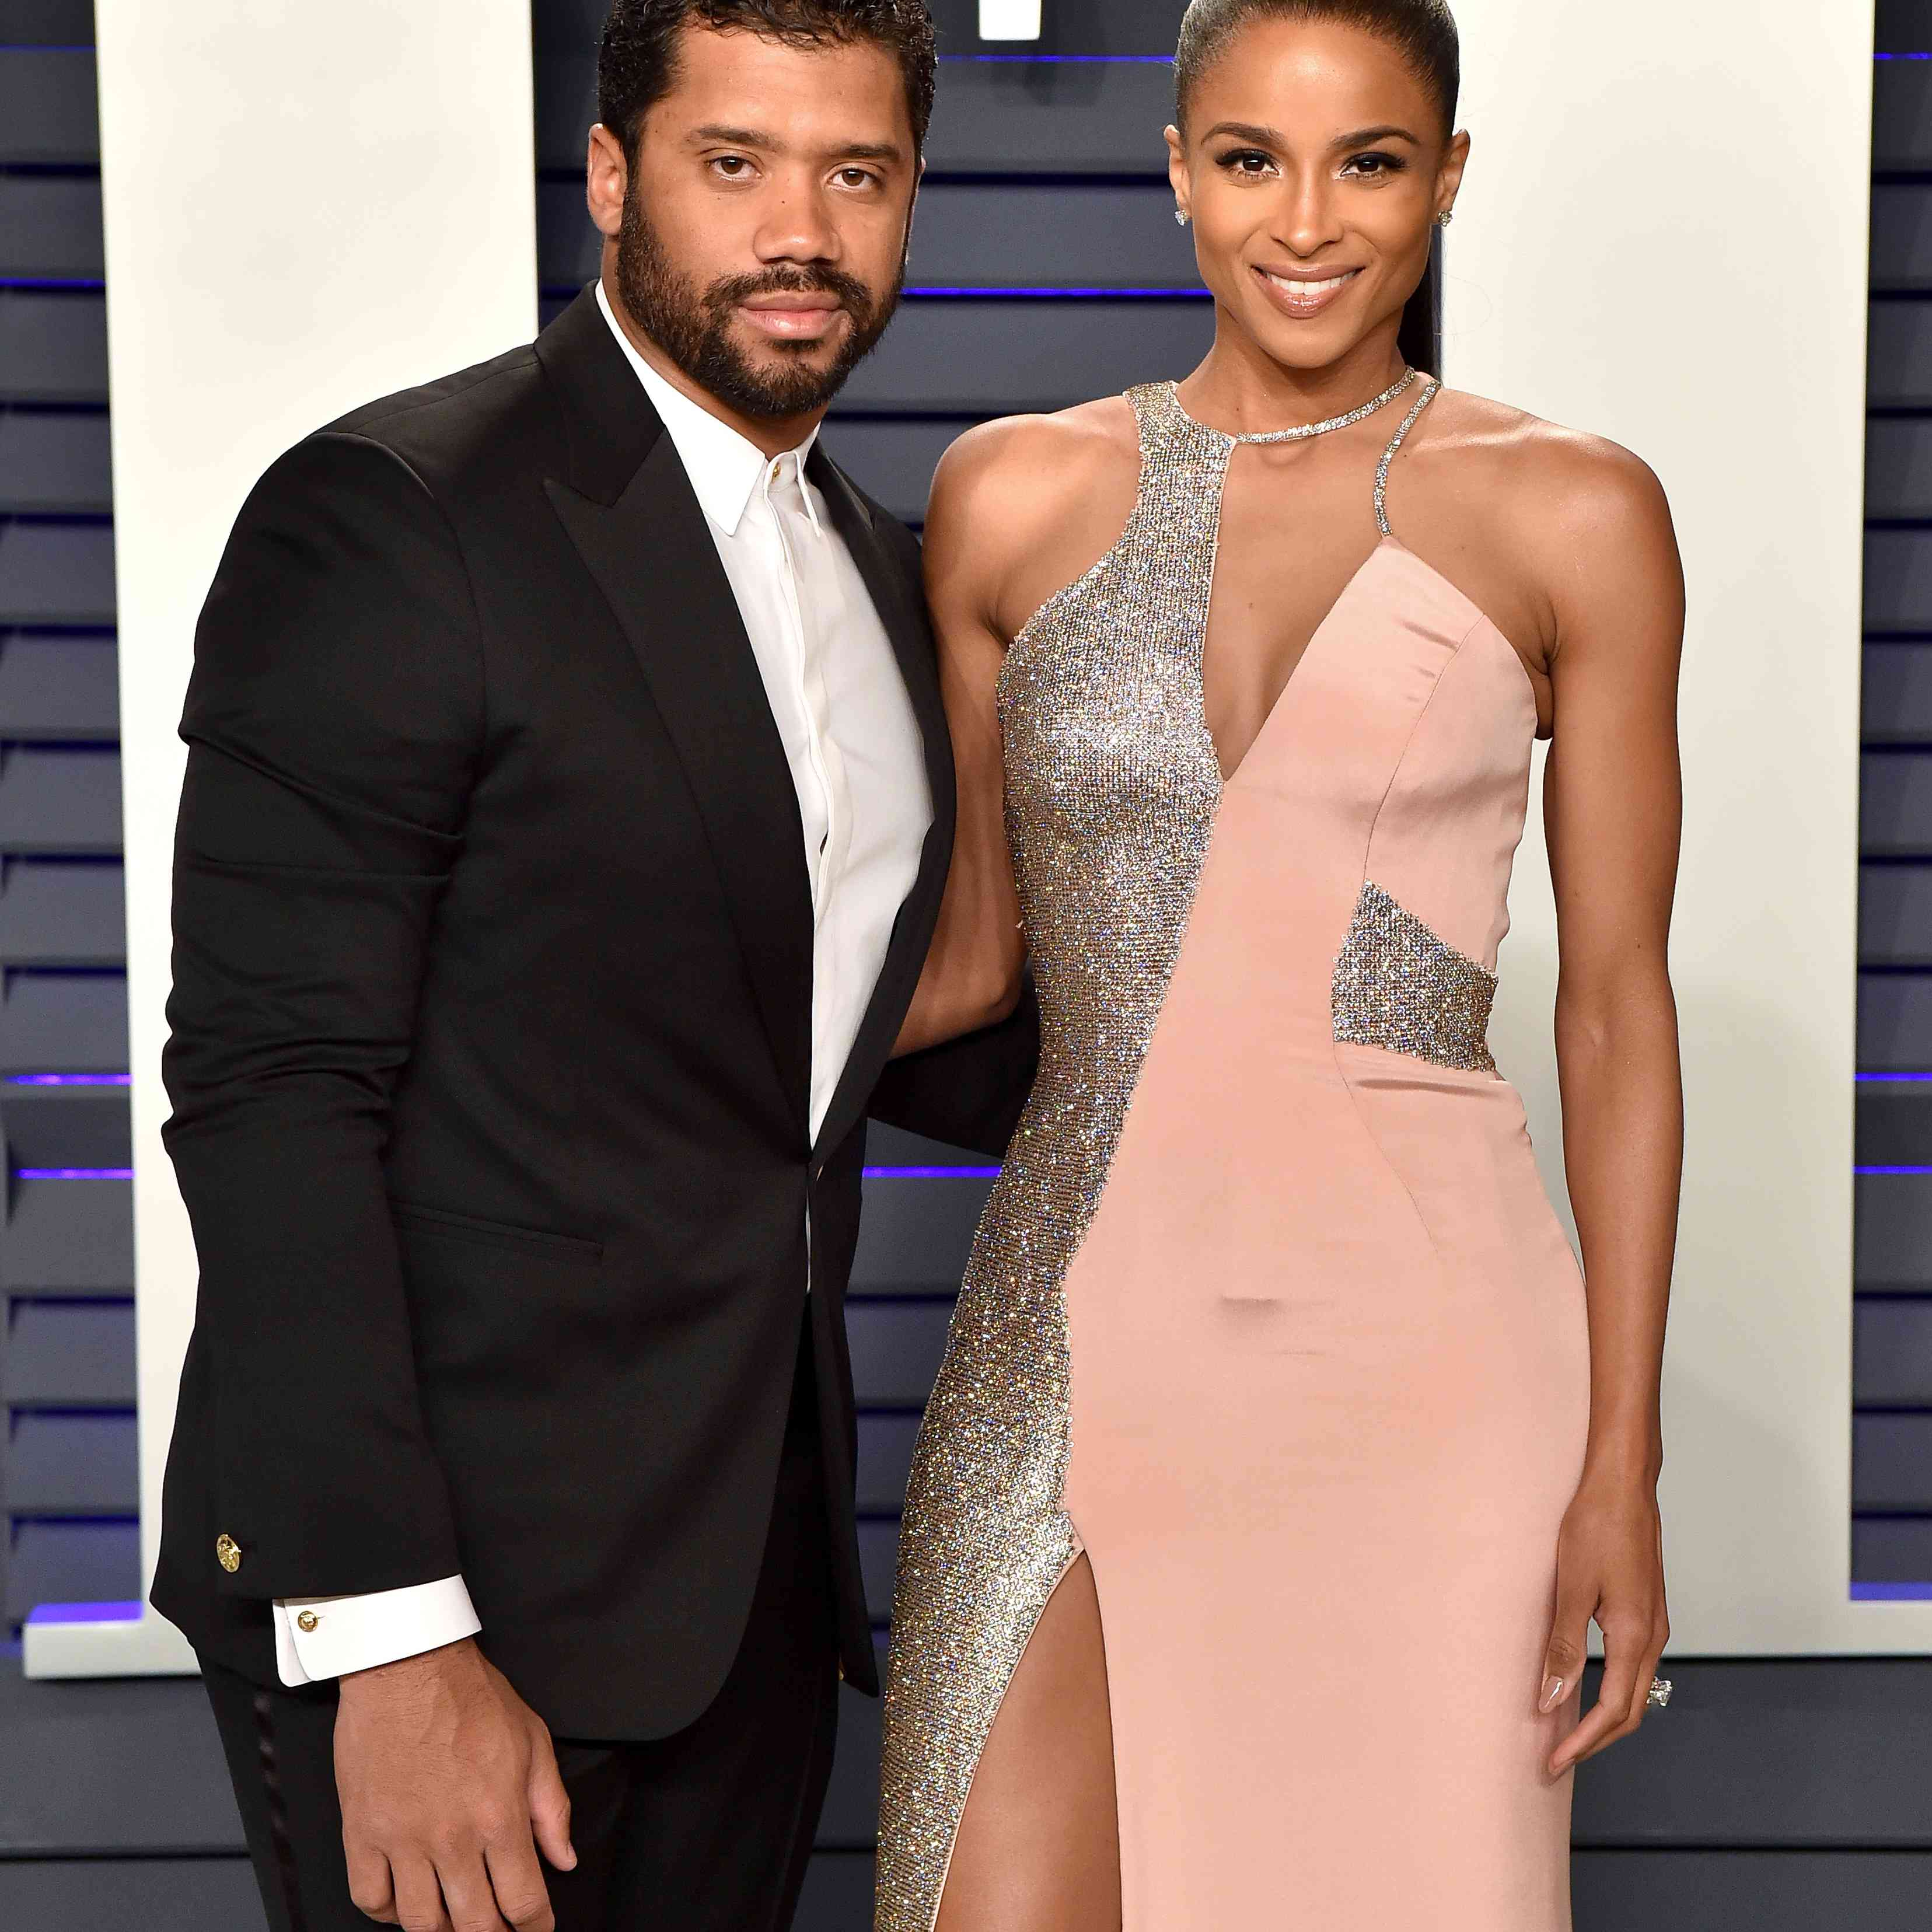 Russell Wilson and Ciara attend the Vanity Fair Oscar party.